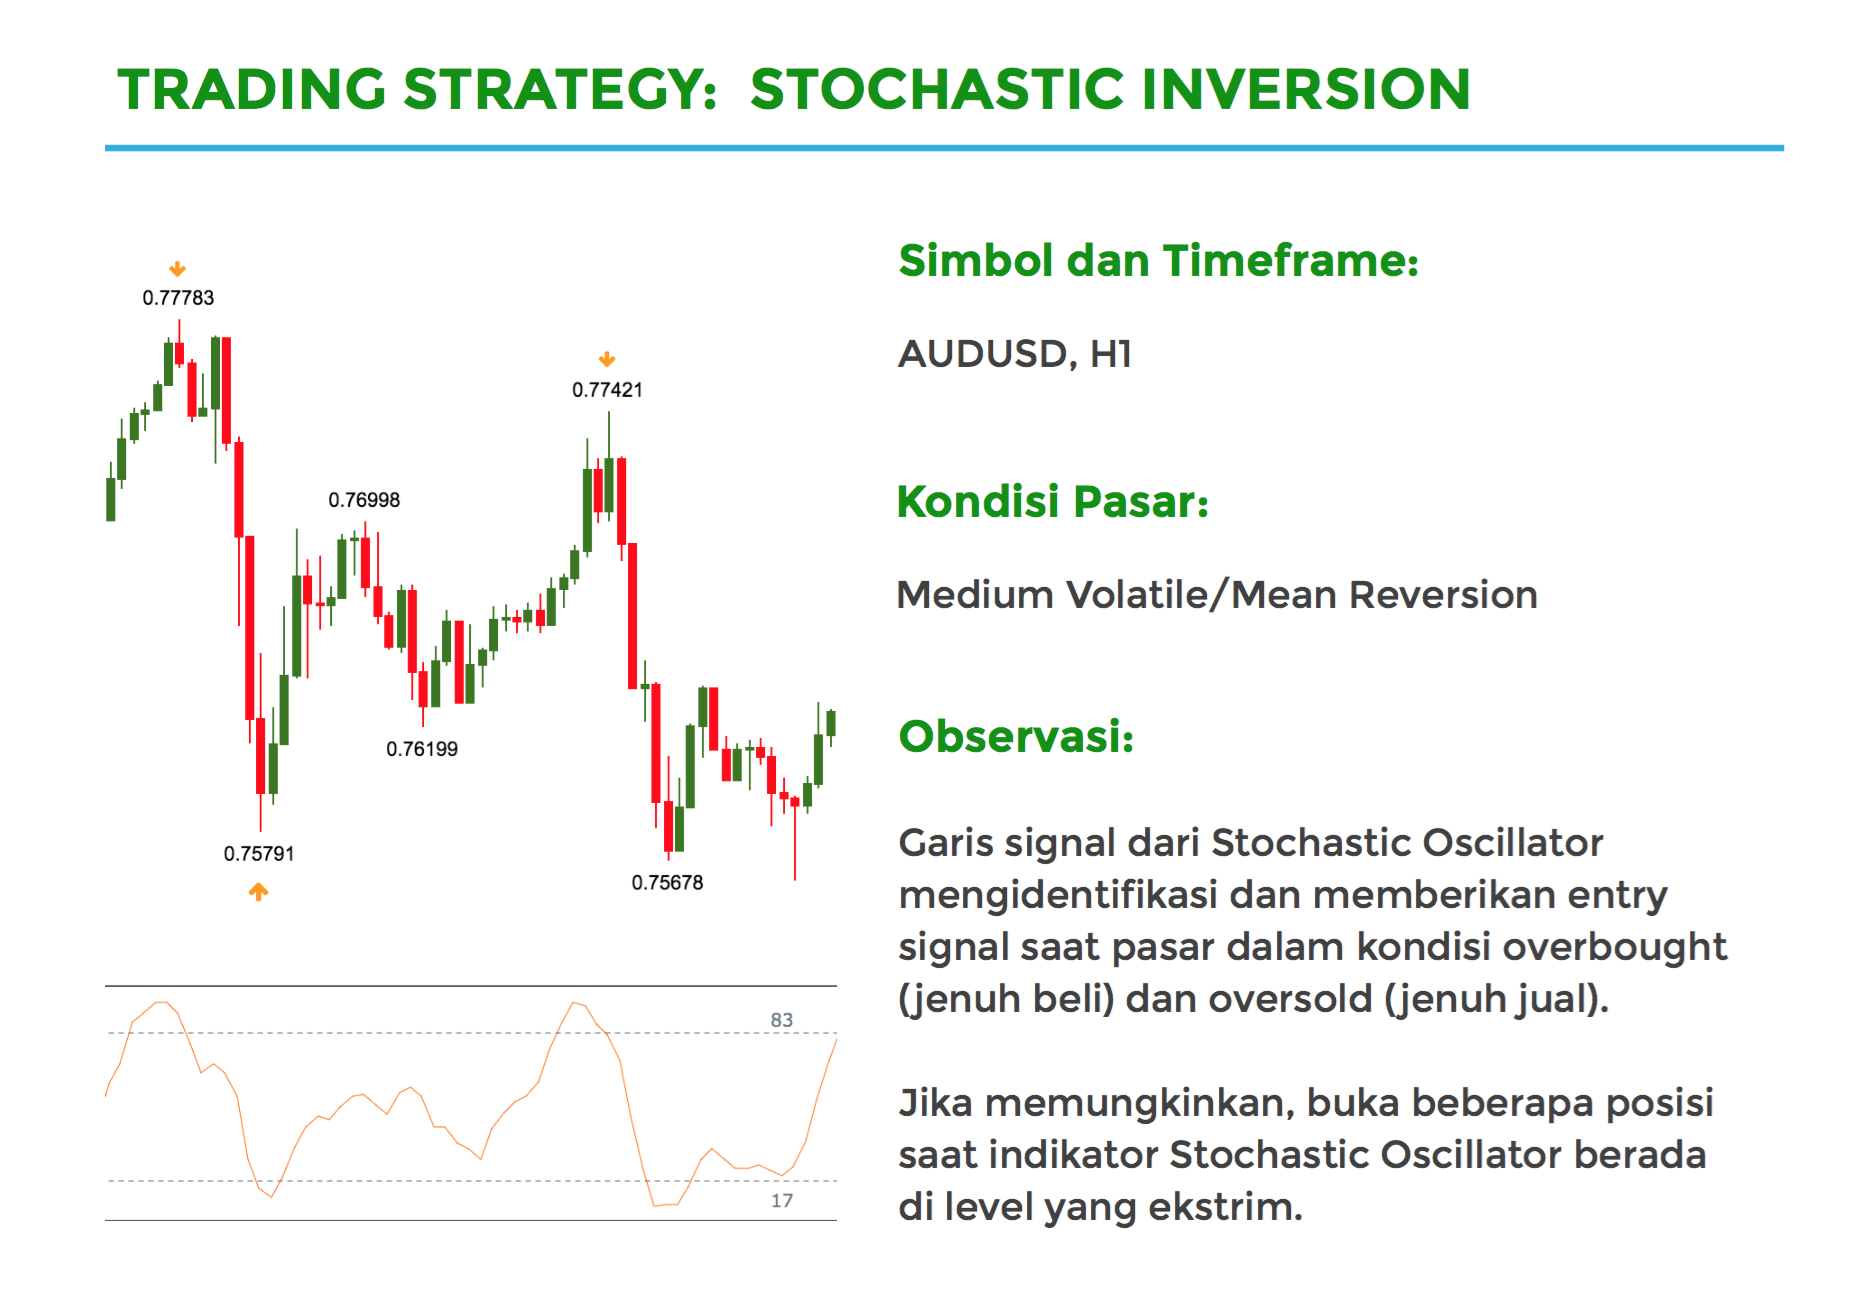 Stochastic Inversion Strategy